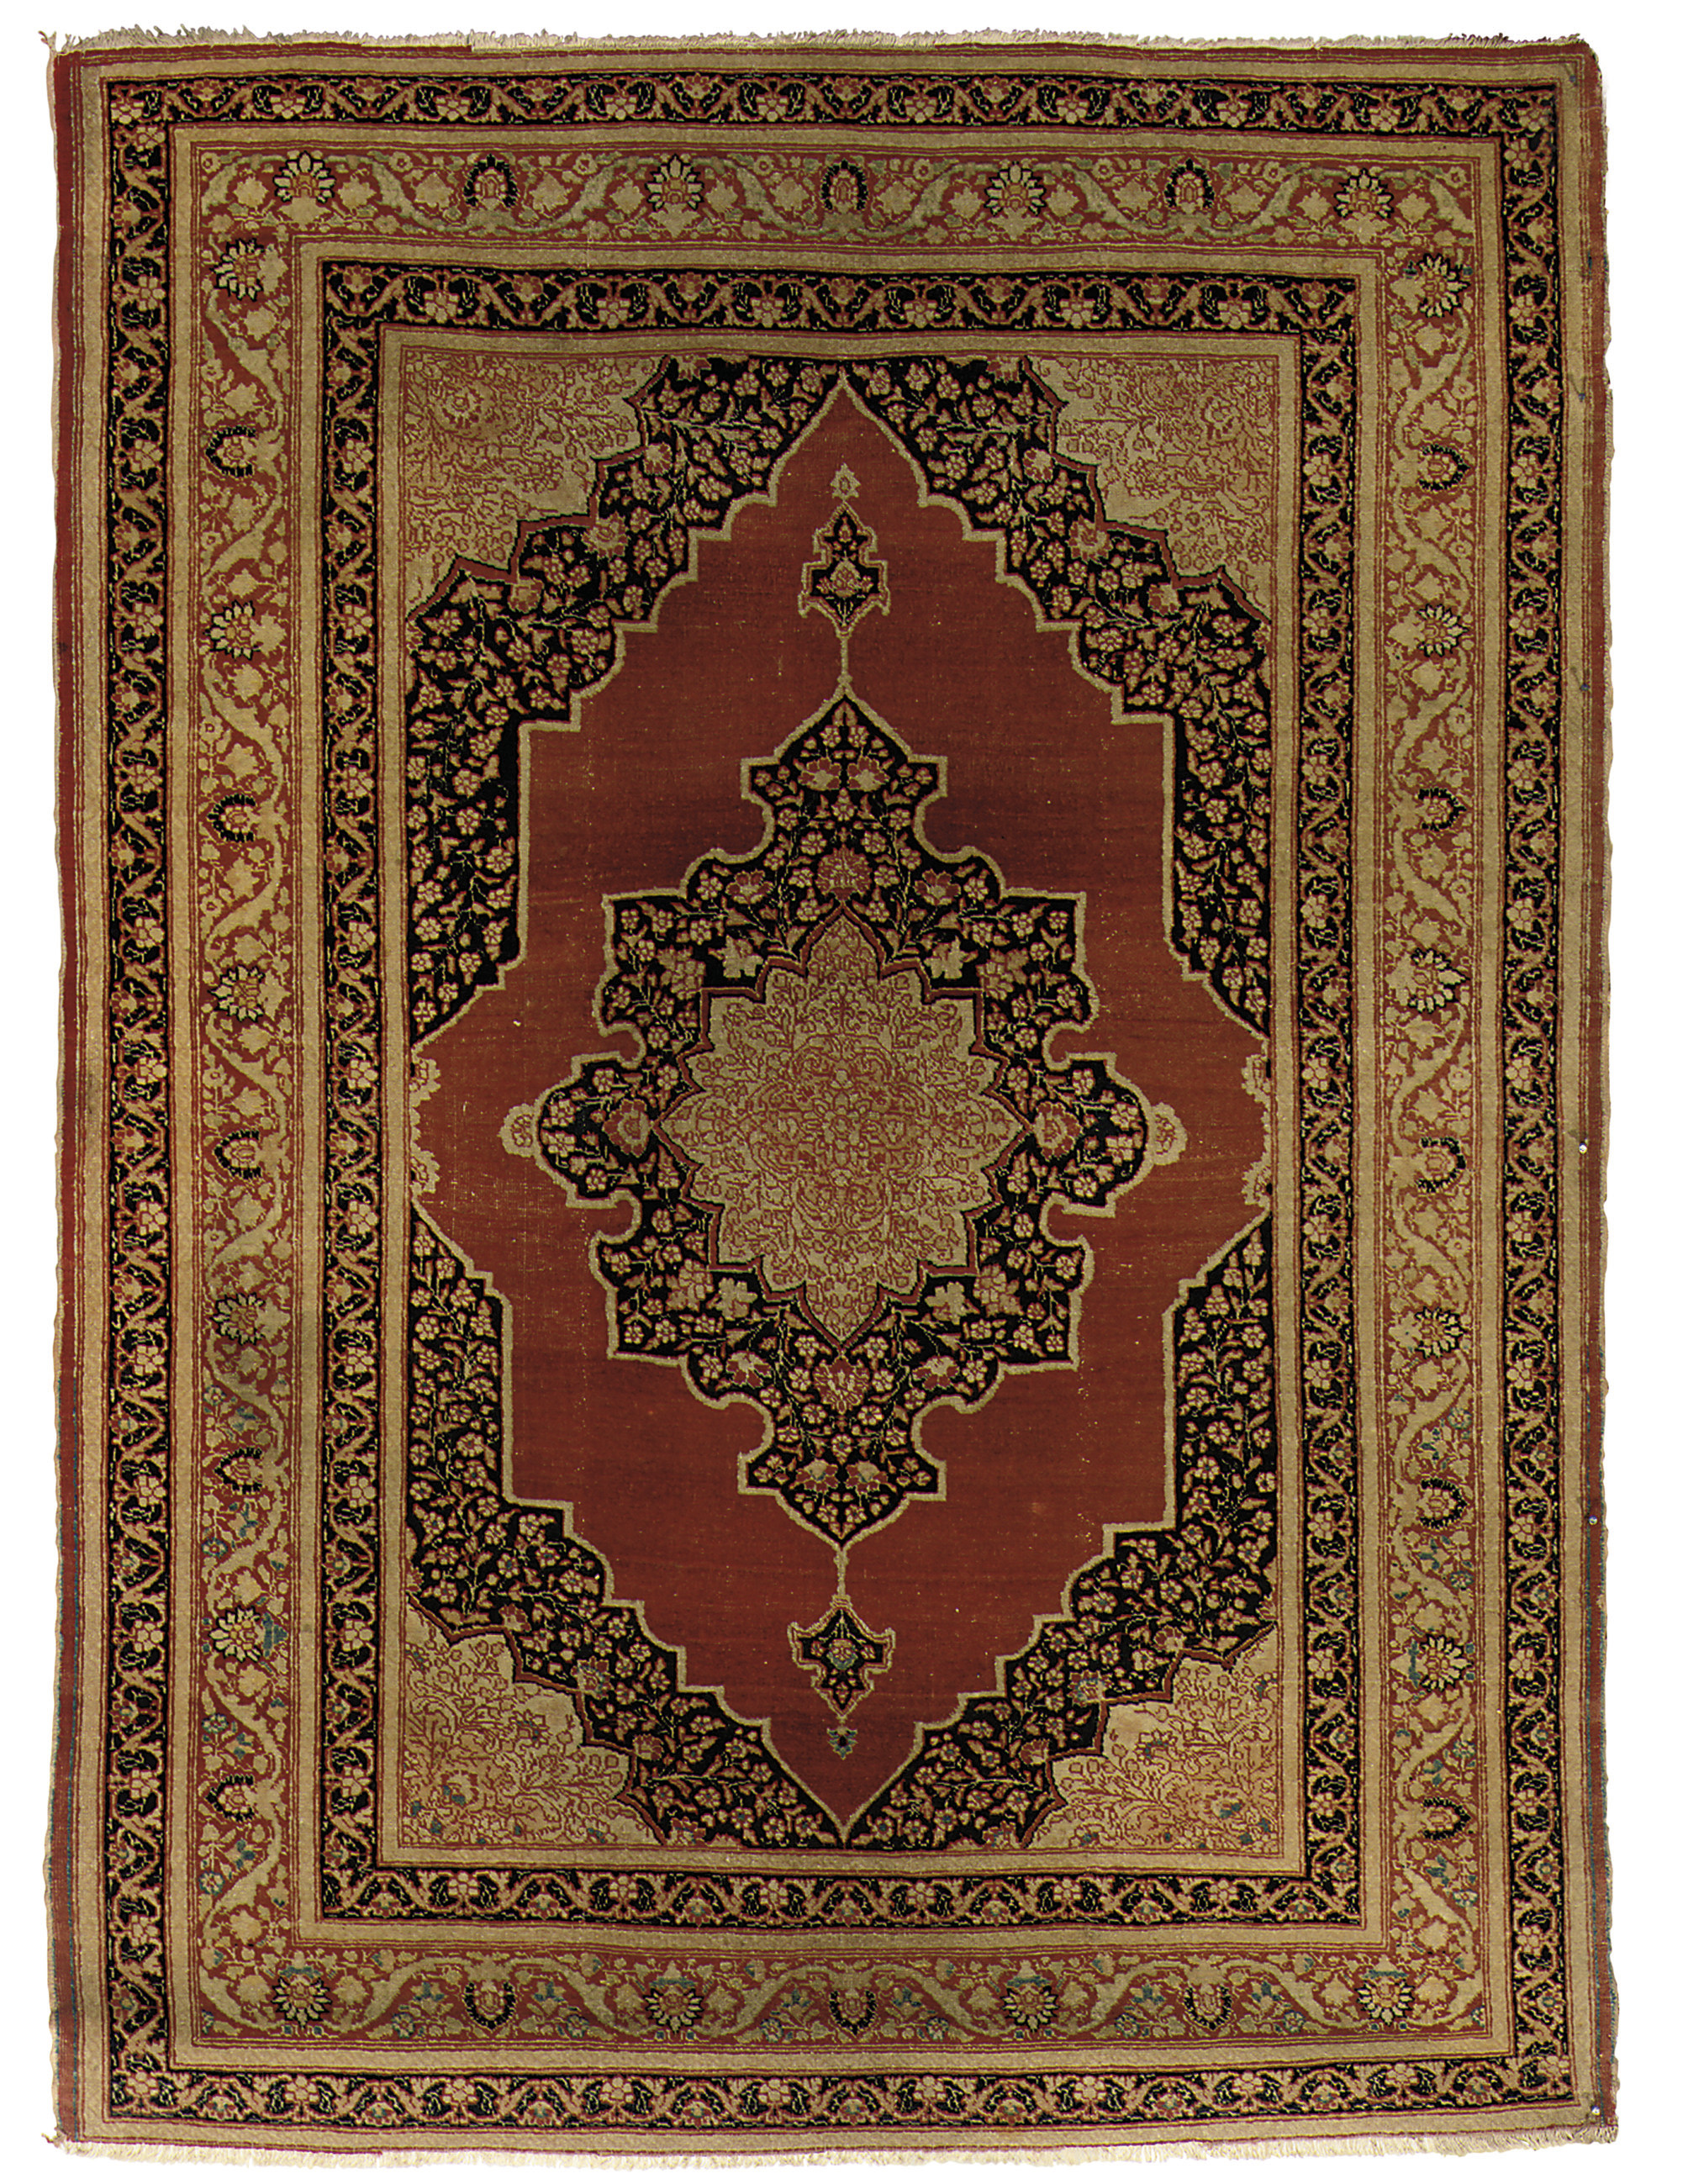 A fine antique Tabriz rug